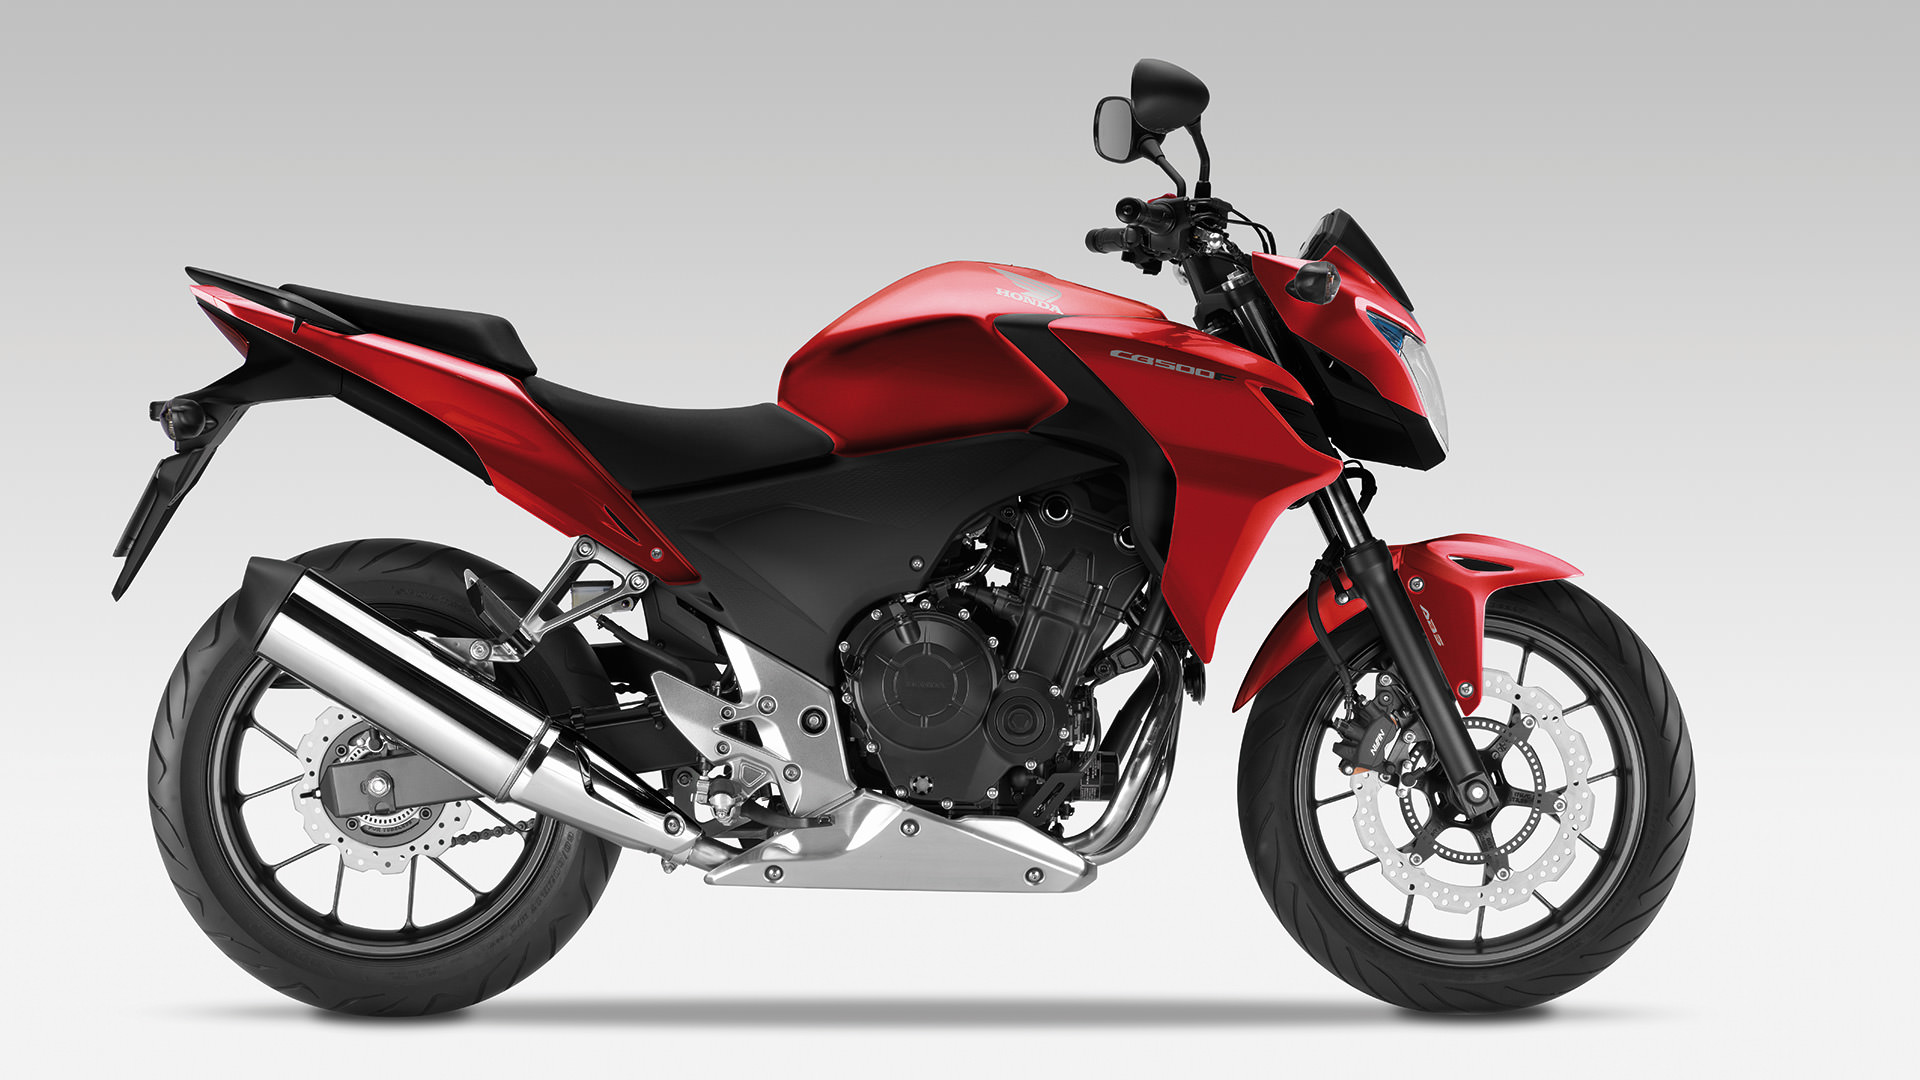 2015 honda cb500f review specs pictures videos. Black Bedroom Furniture Sets. Home Design Ideas